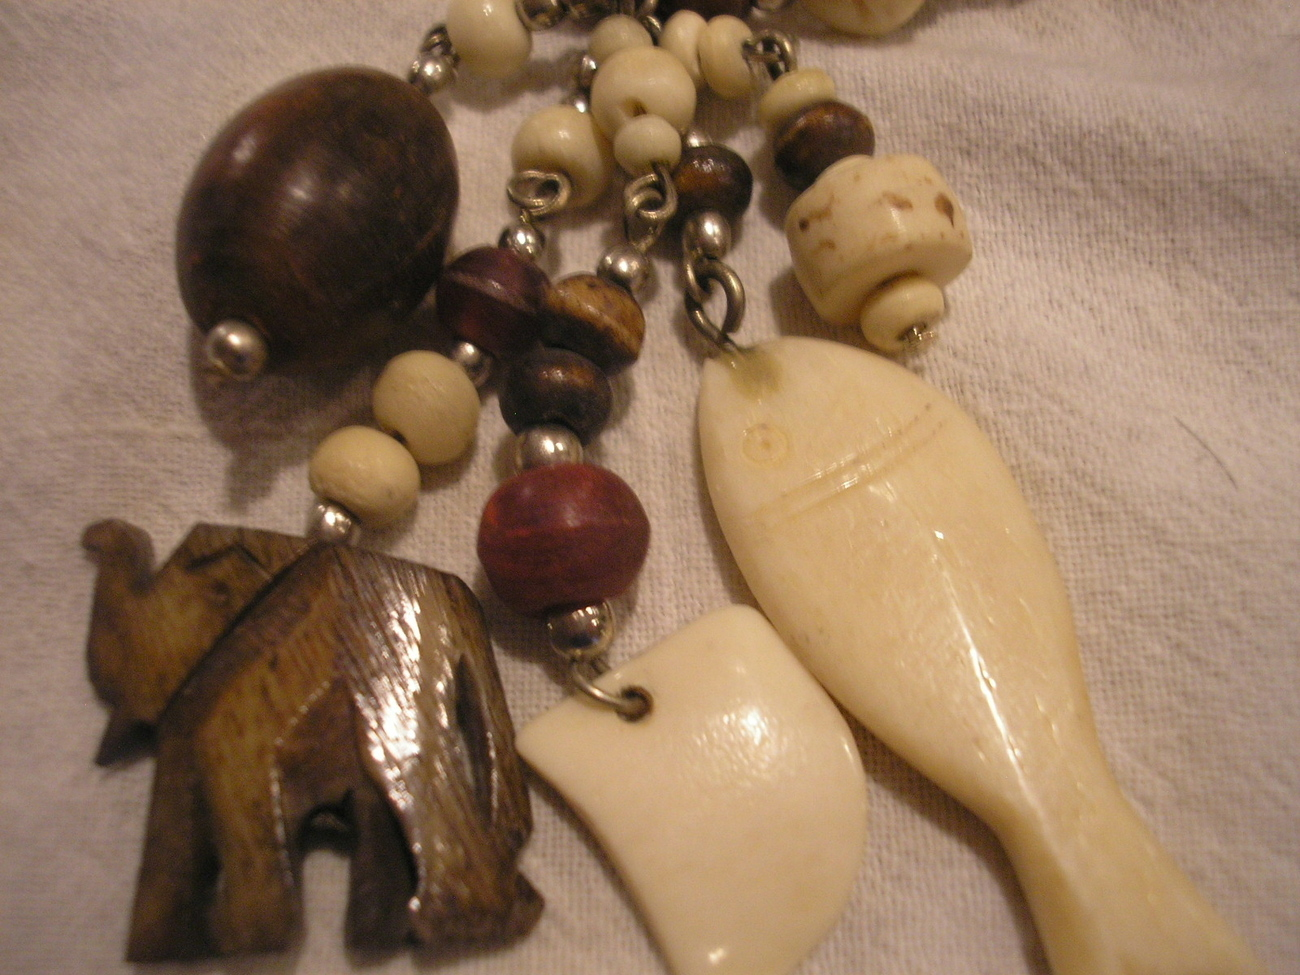 1 set Handcrafted African style Necklace & Earrings Wood, Ceramic Wholesale NEW